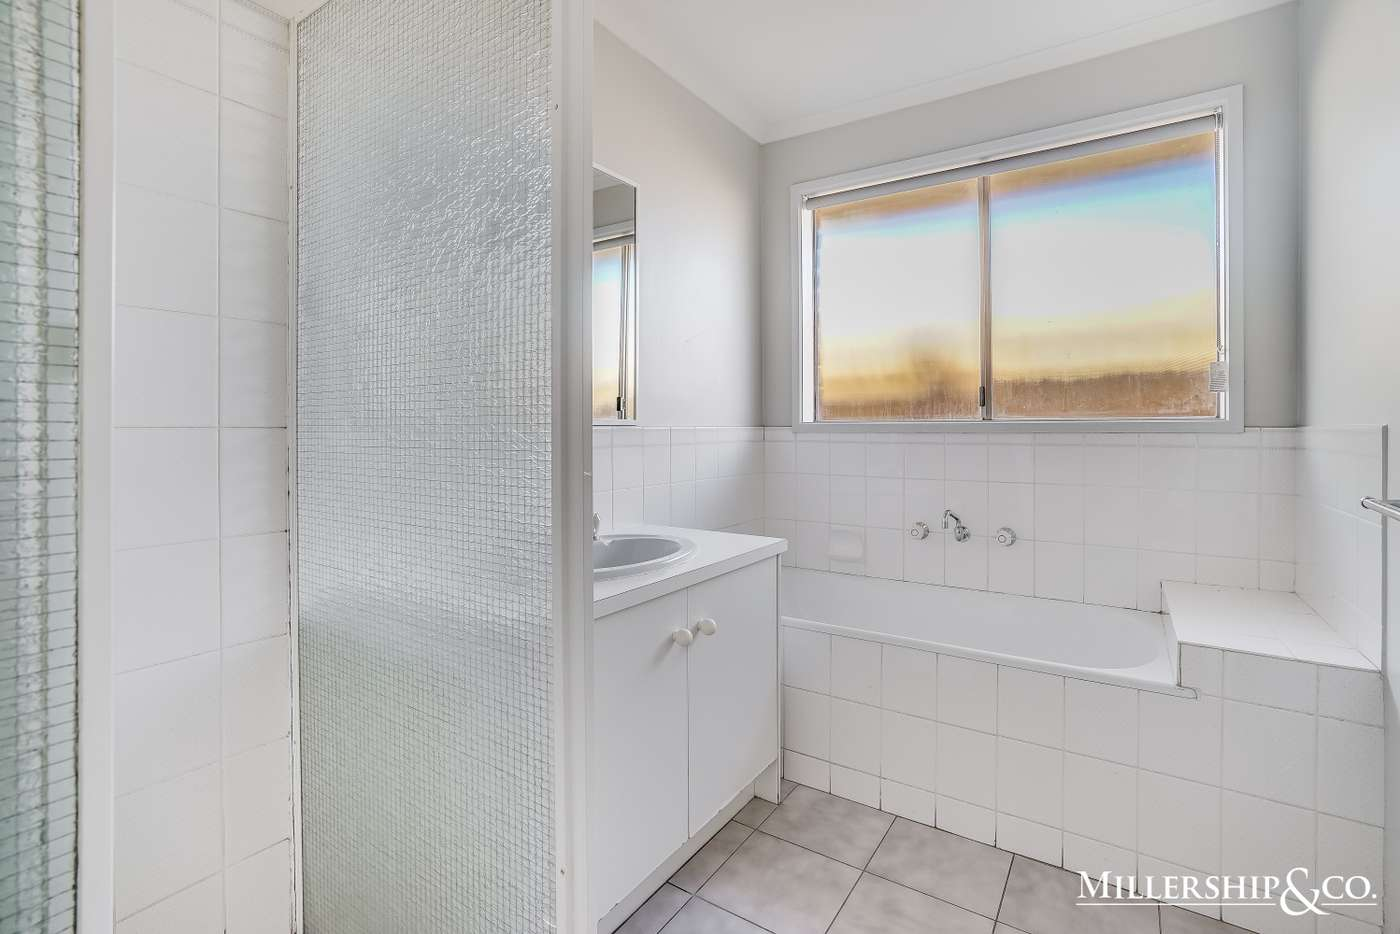 Fifth view of Homely house listing, 2/36 The Boulevard, Thomastown VIC 3074